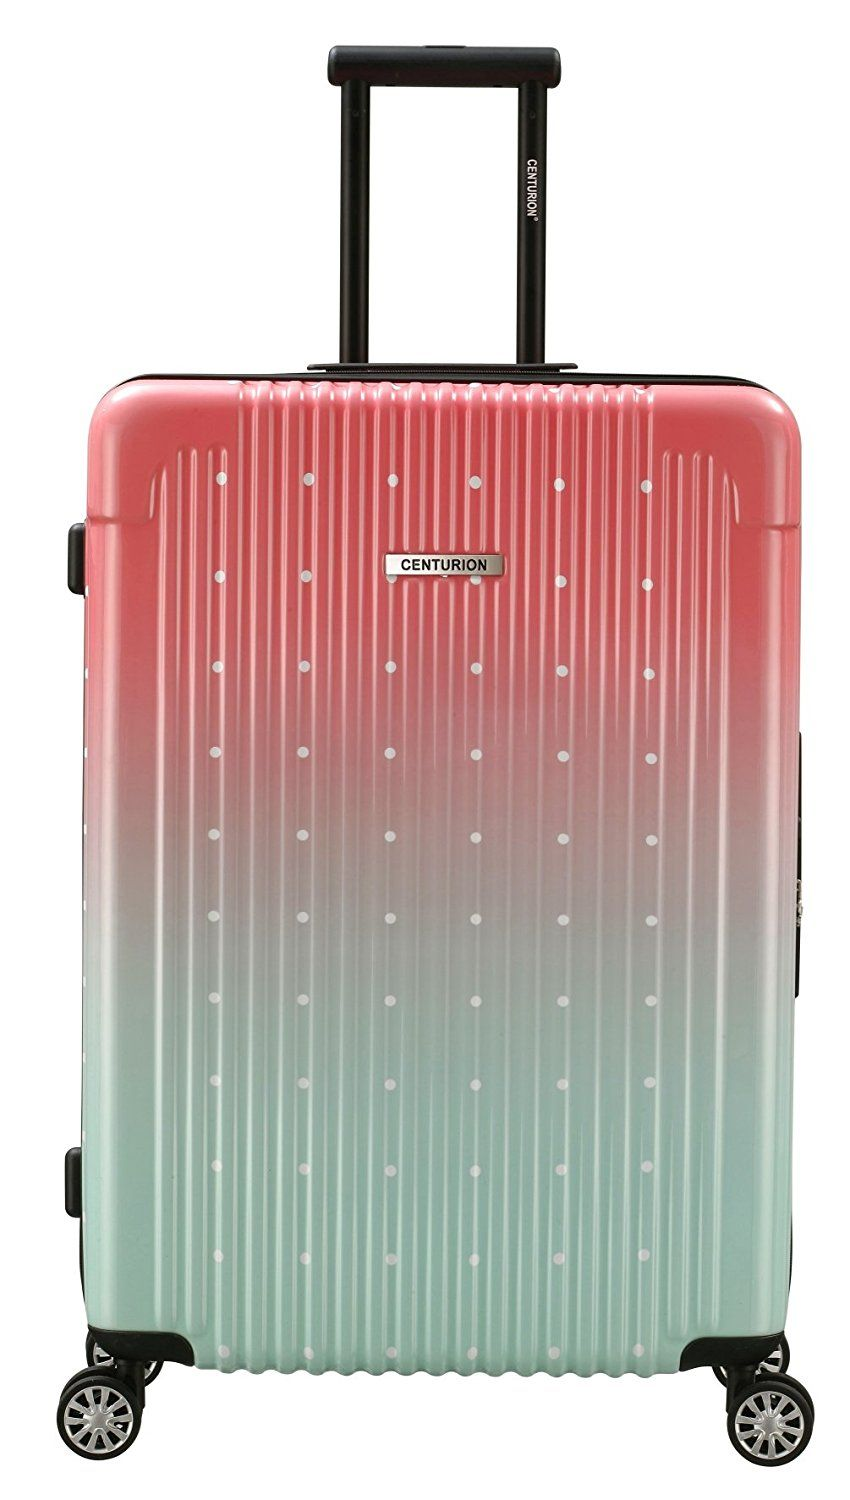 e1288932ed Gorgeous and stylish medium-sized suitcase option -- Hardside Spinner 26  inch in Ombre Pink! What a cool suitcase that will be easy to spot when  traveling.